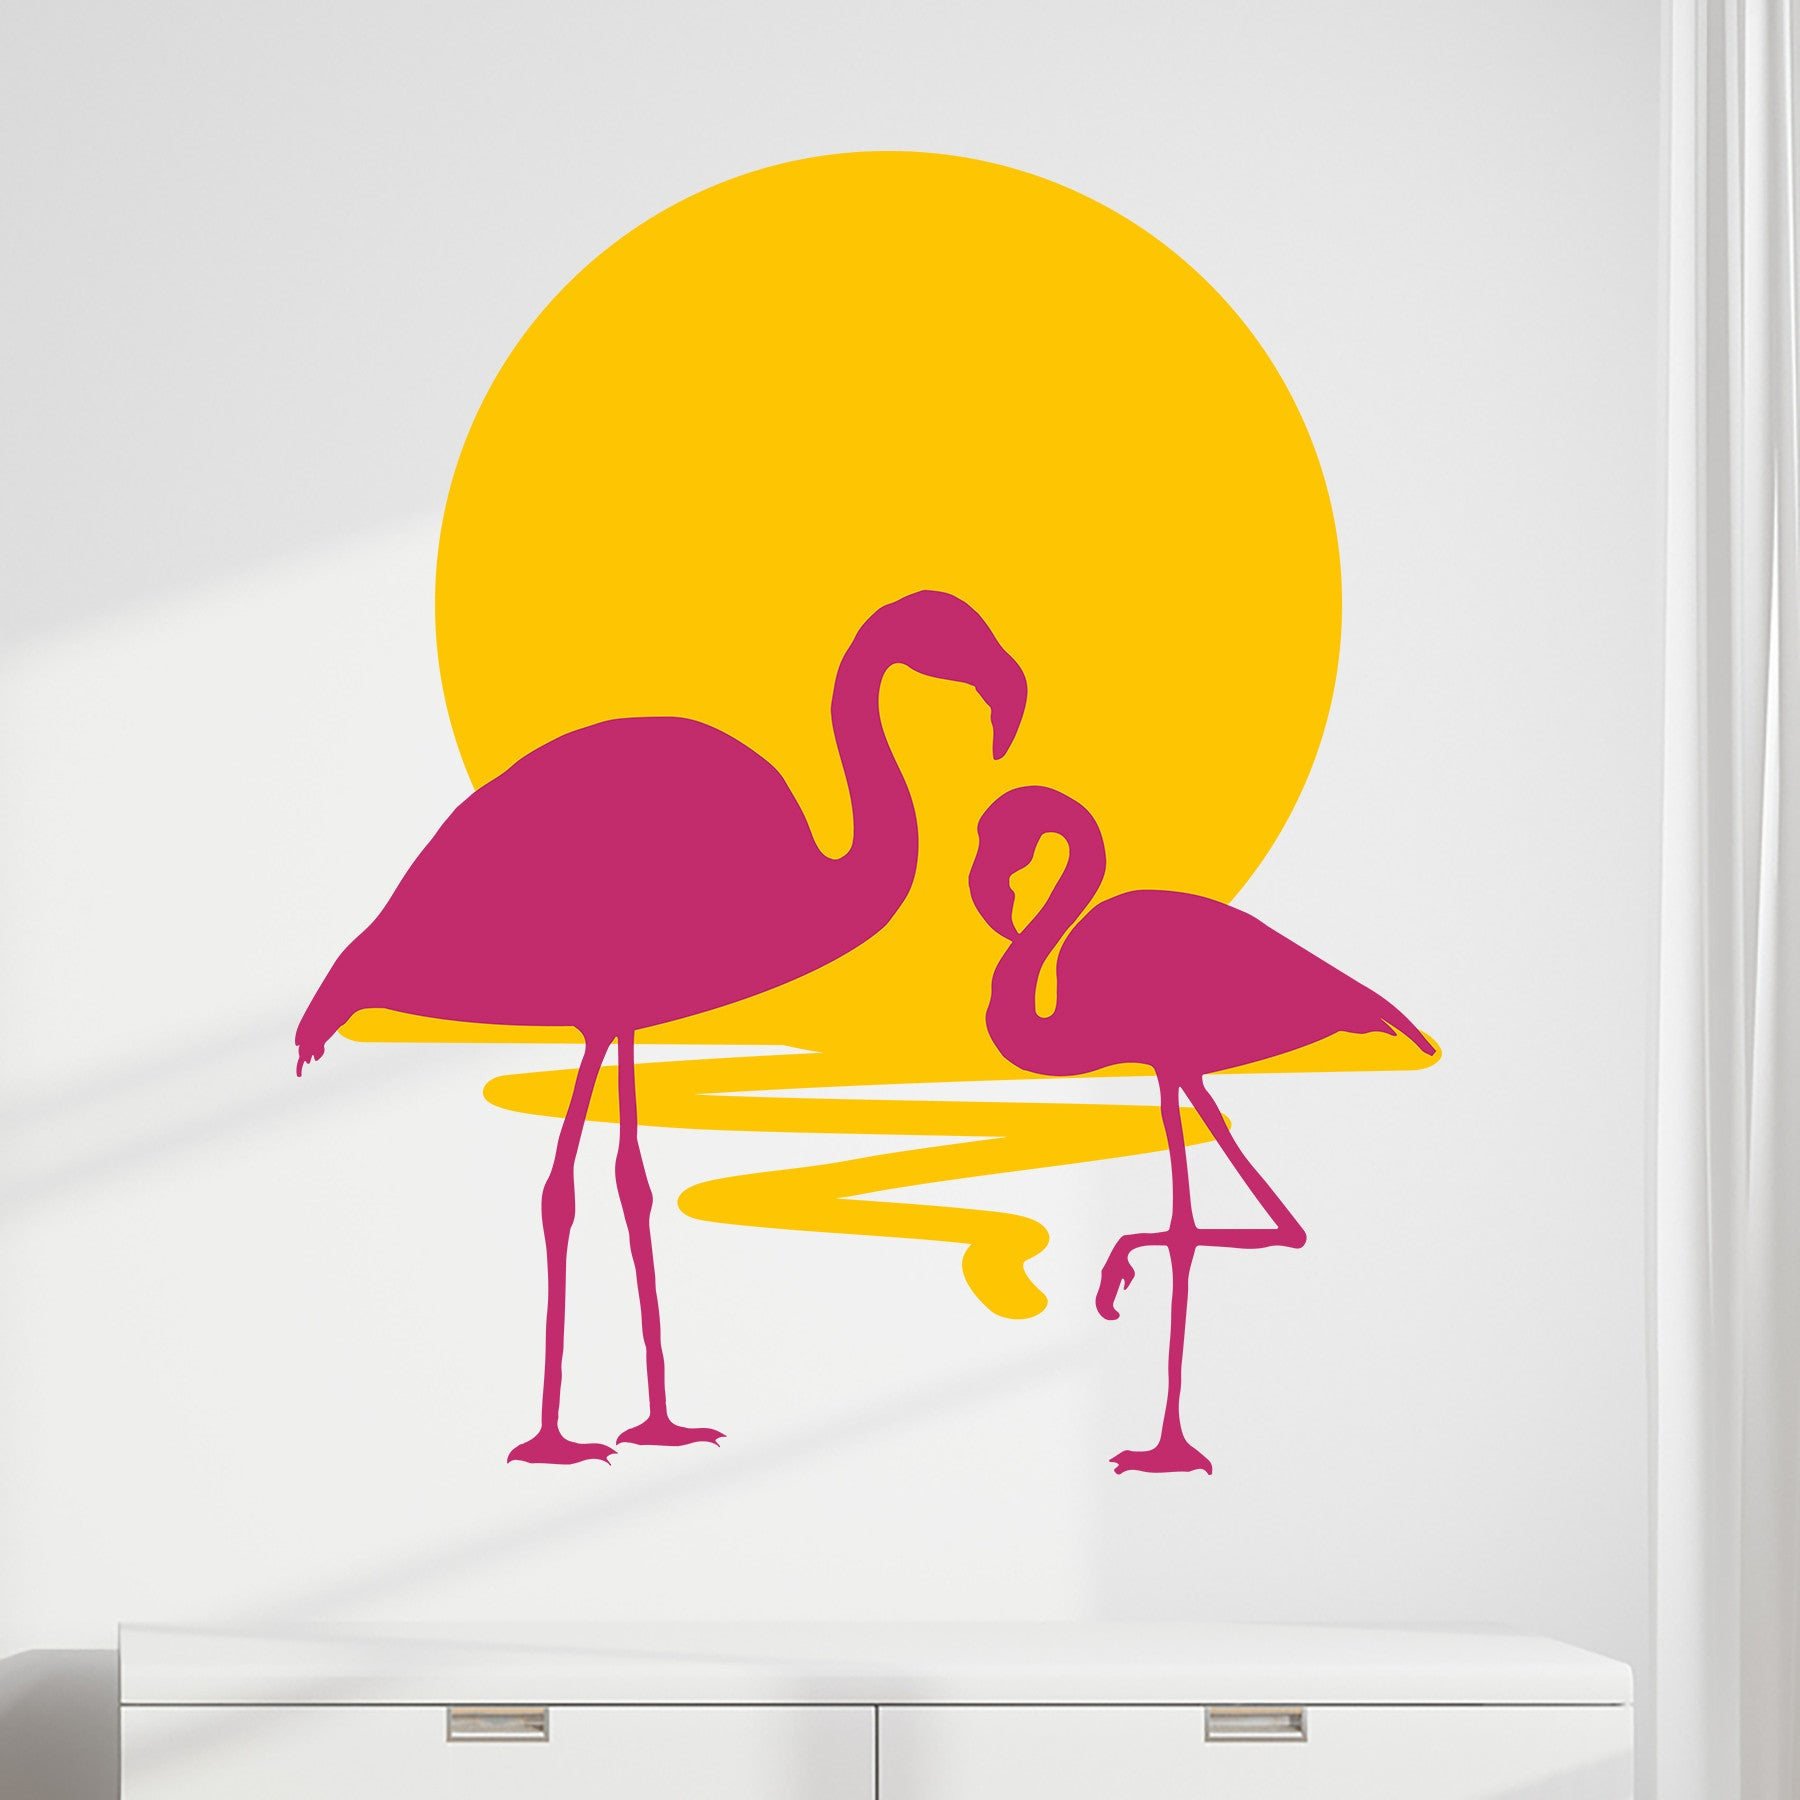 Stunning Pink Flamingo Wall Decor Pictures Inspiration - The Wall ...